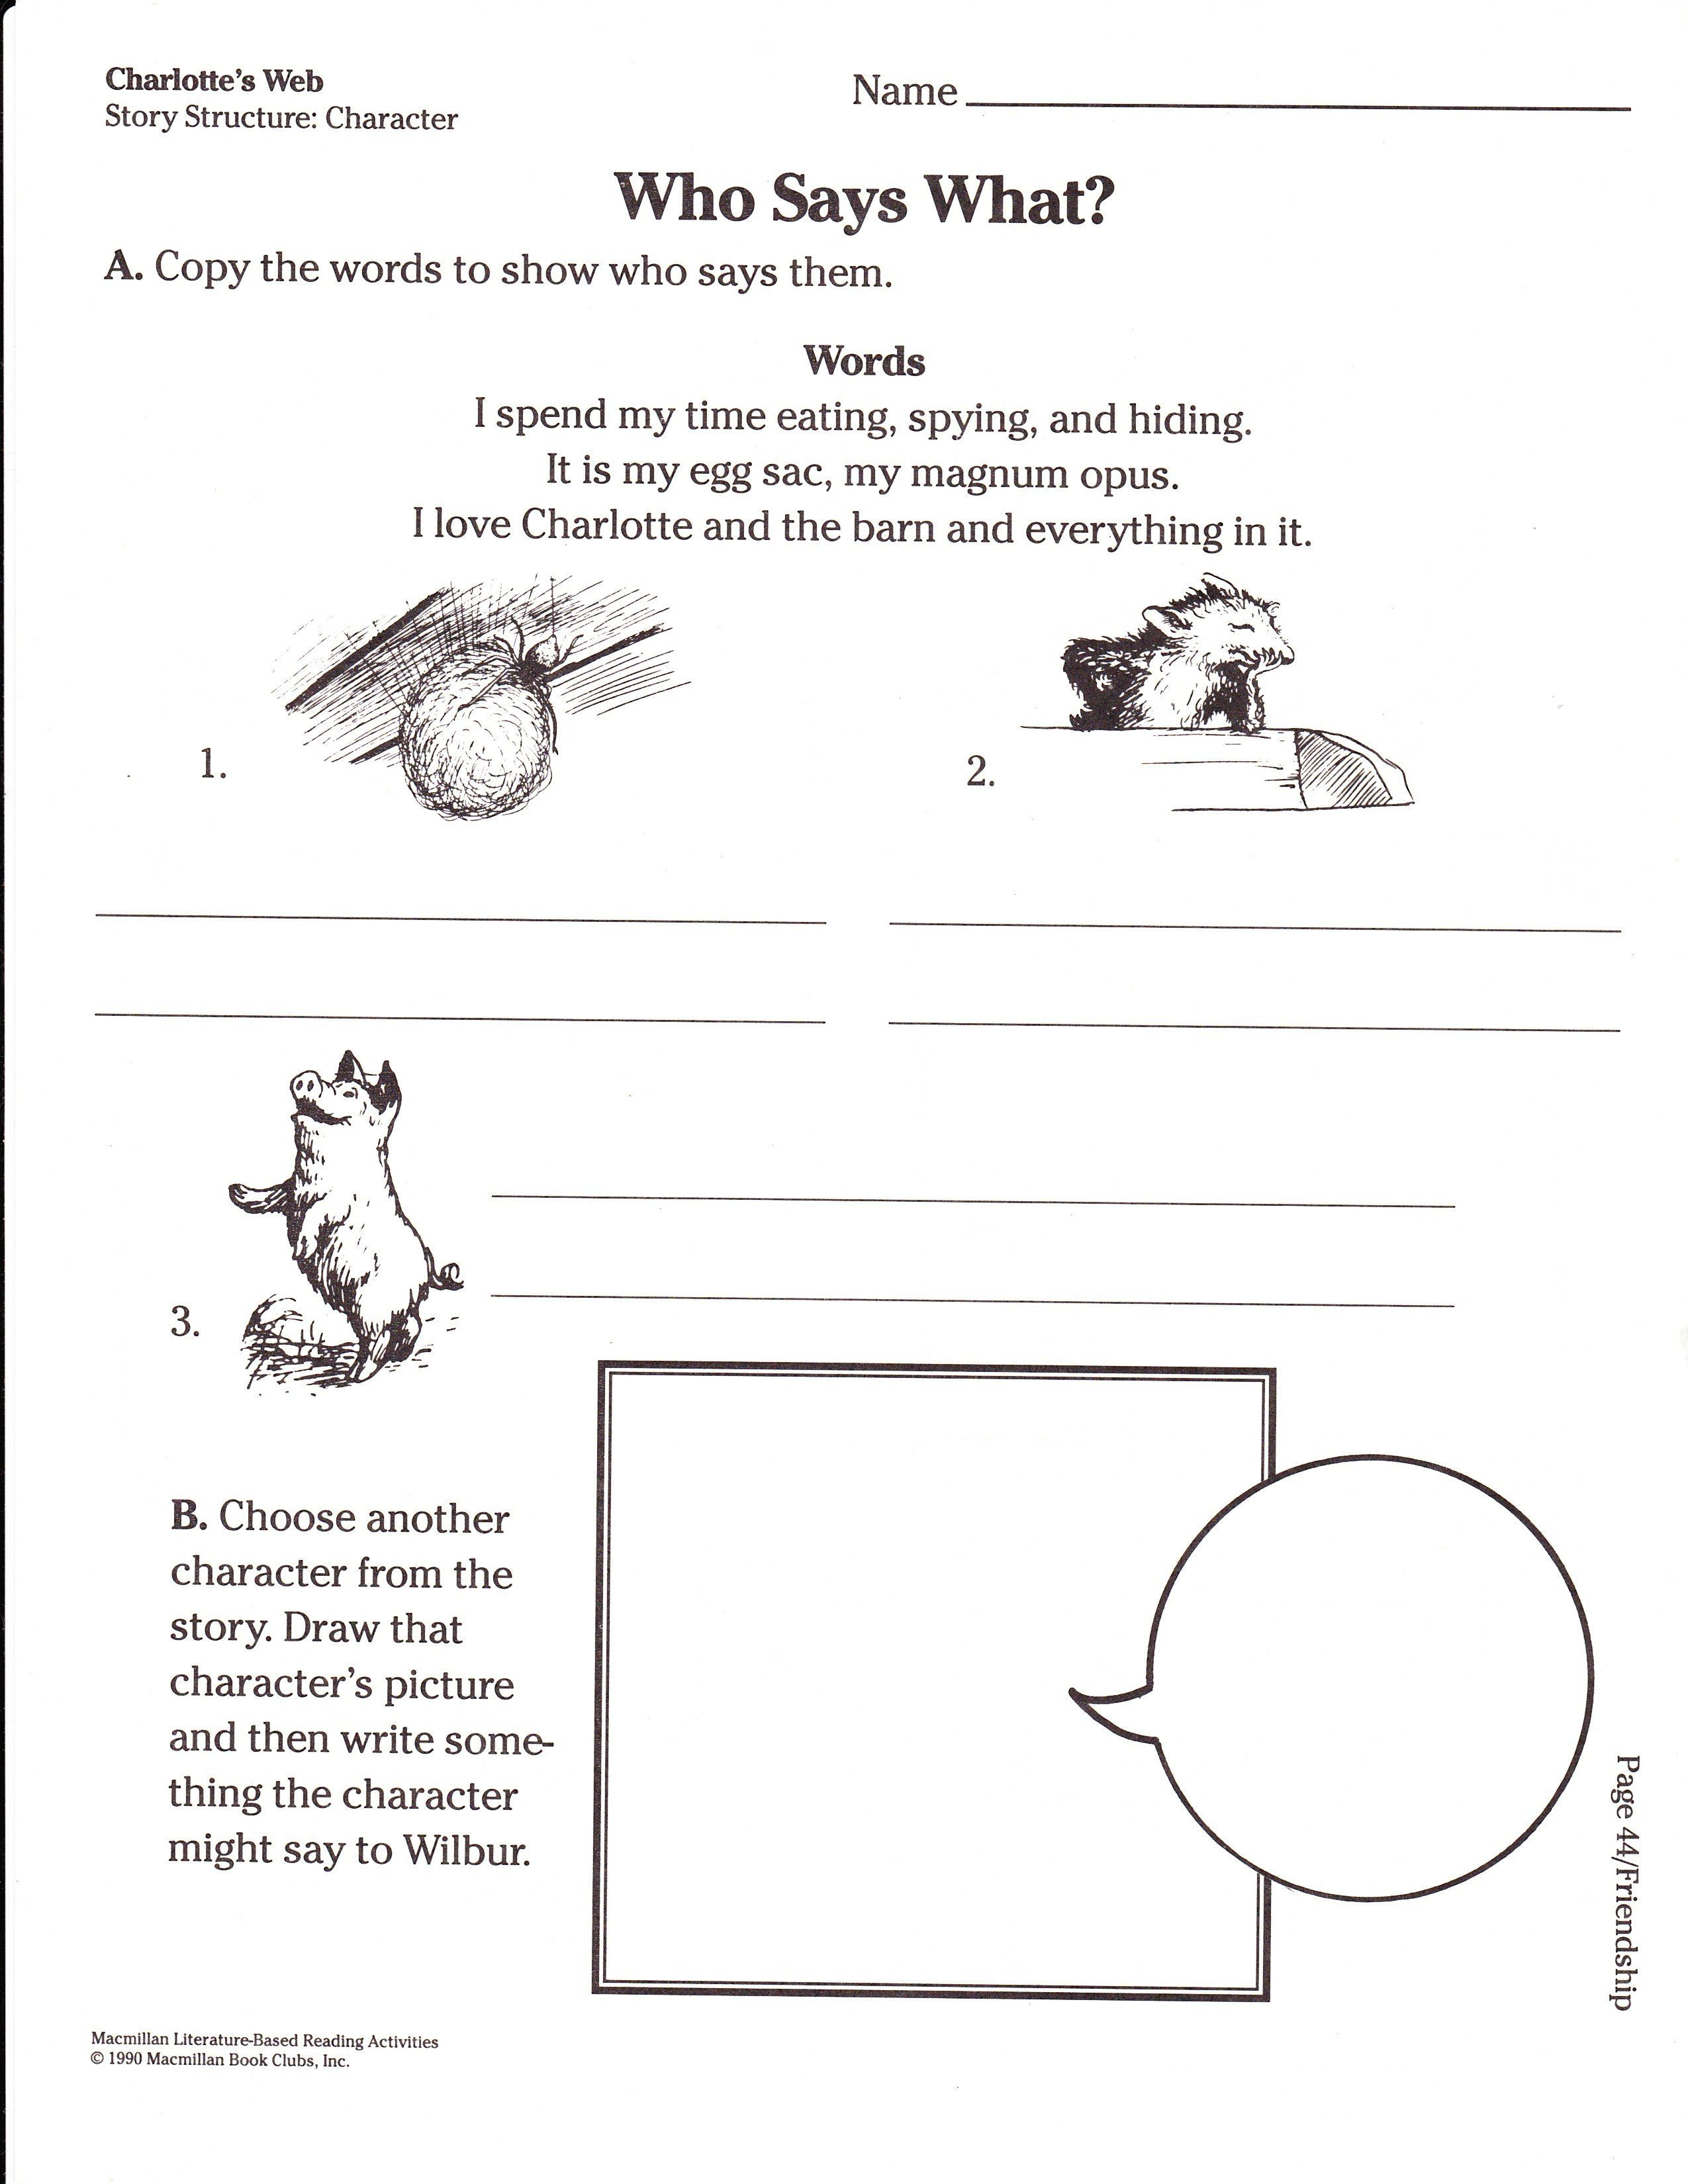 How To Shift From School Think To Engaged Learning Math Worksheet Repetition Of Words Free Teacher Resources